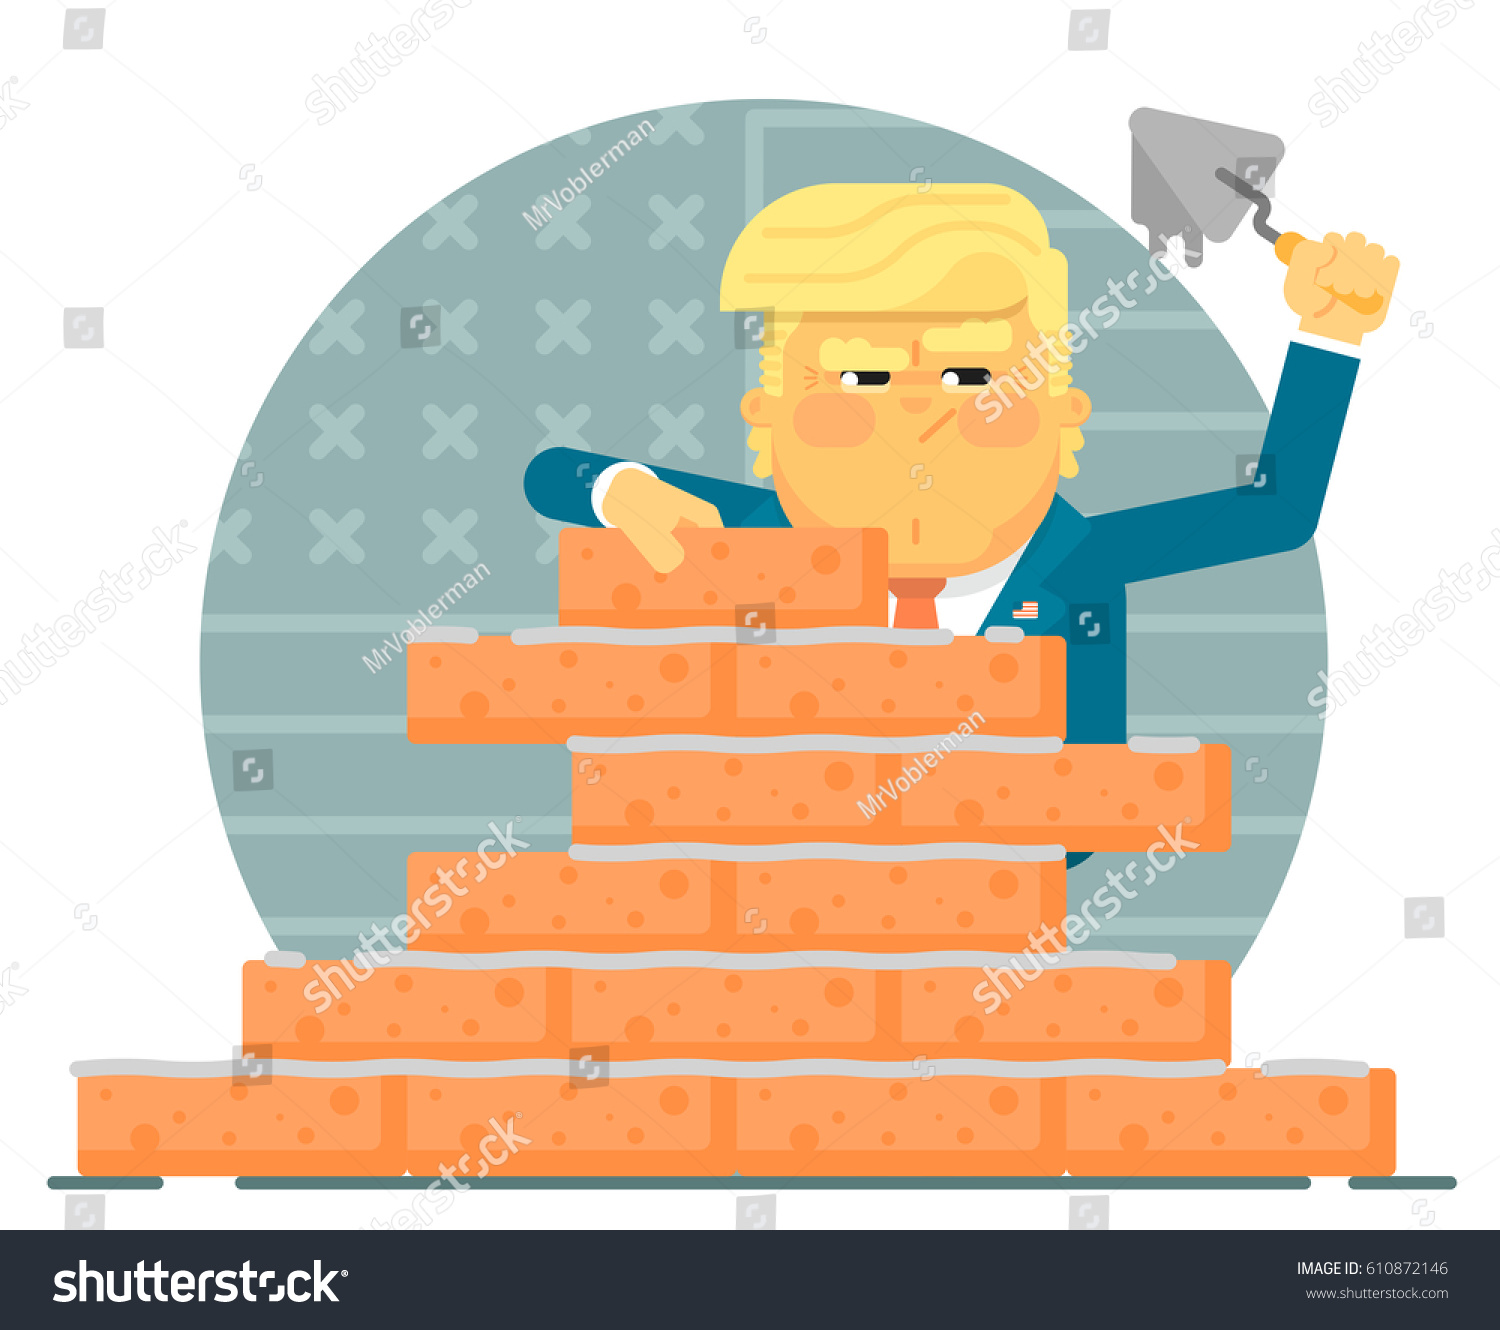 Donald Trump Is Building A Brick Wall Illustration In Flat Style With The President